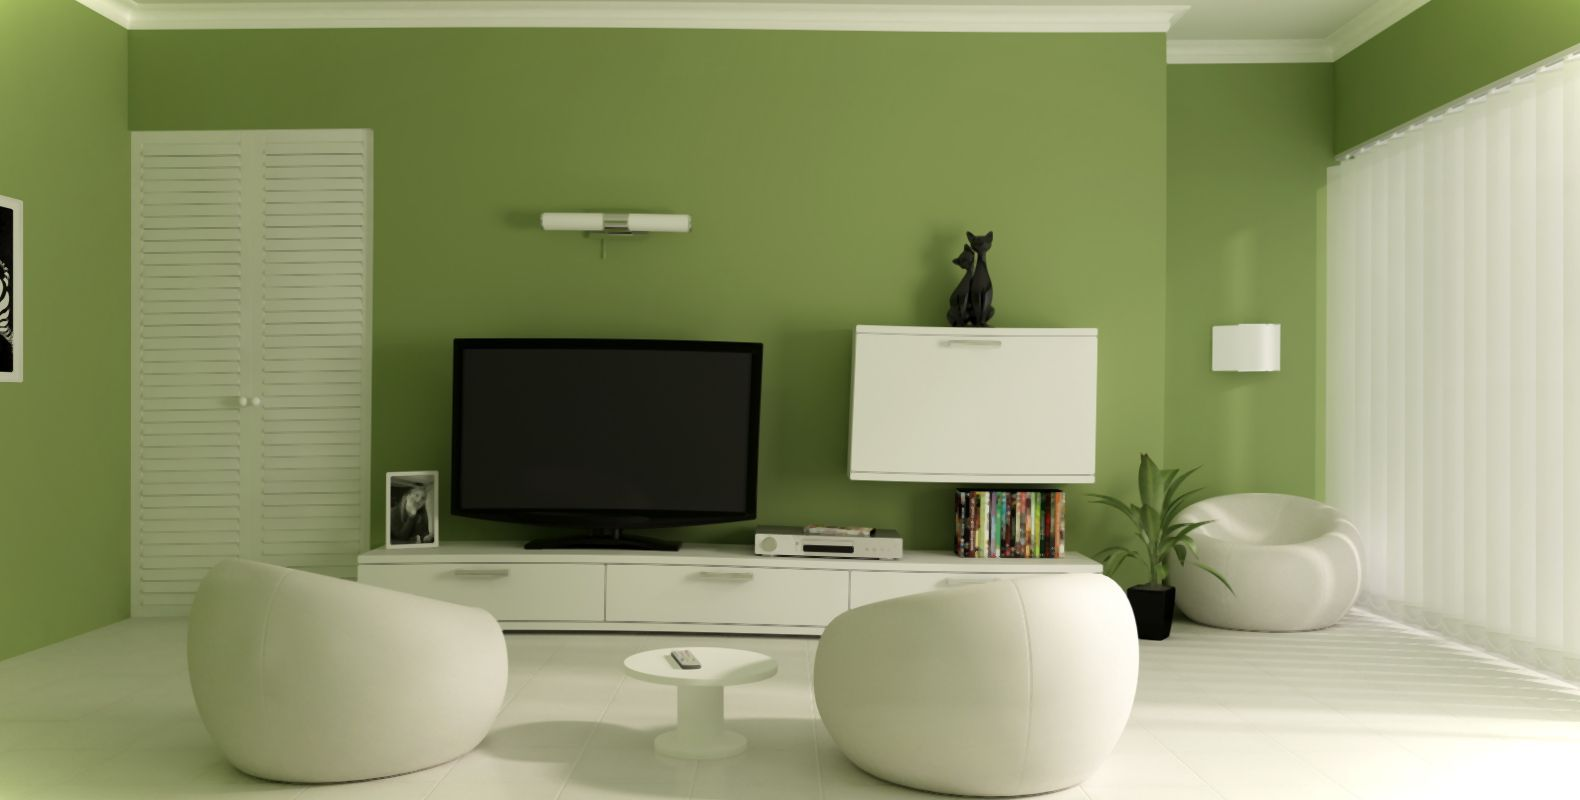 Beautiful Small Living Room Design with Green Wall Paint Color and ...